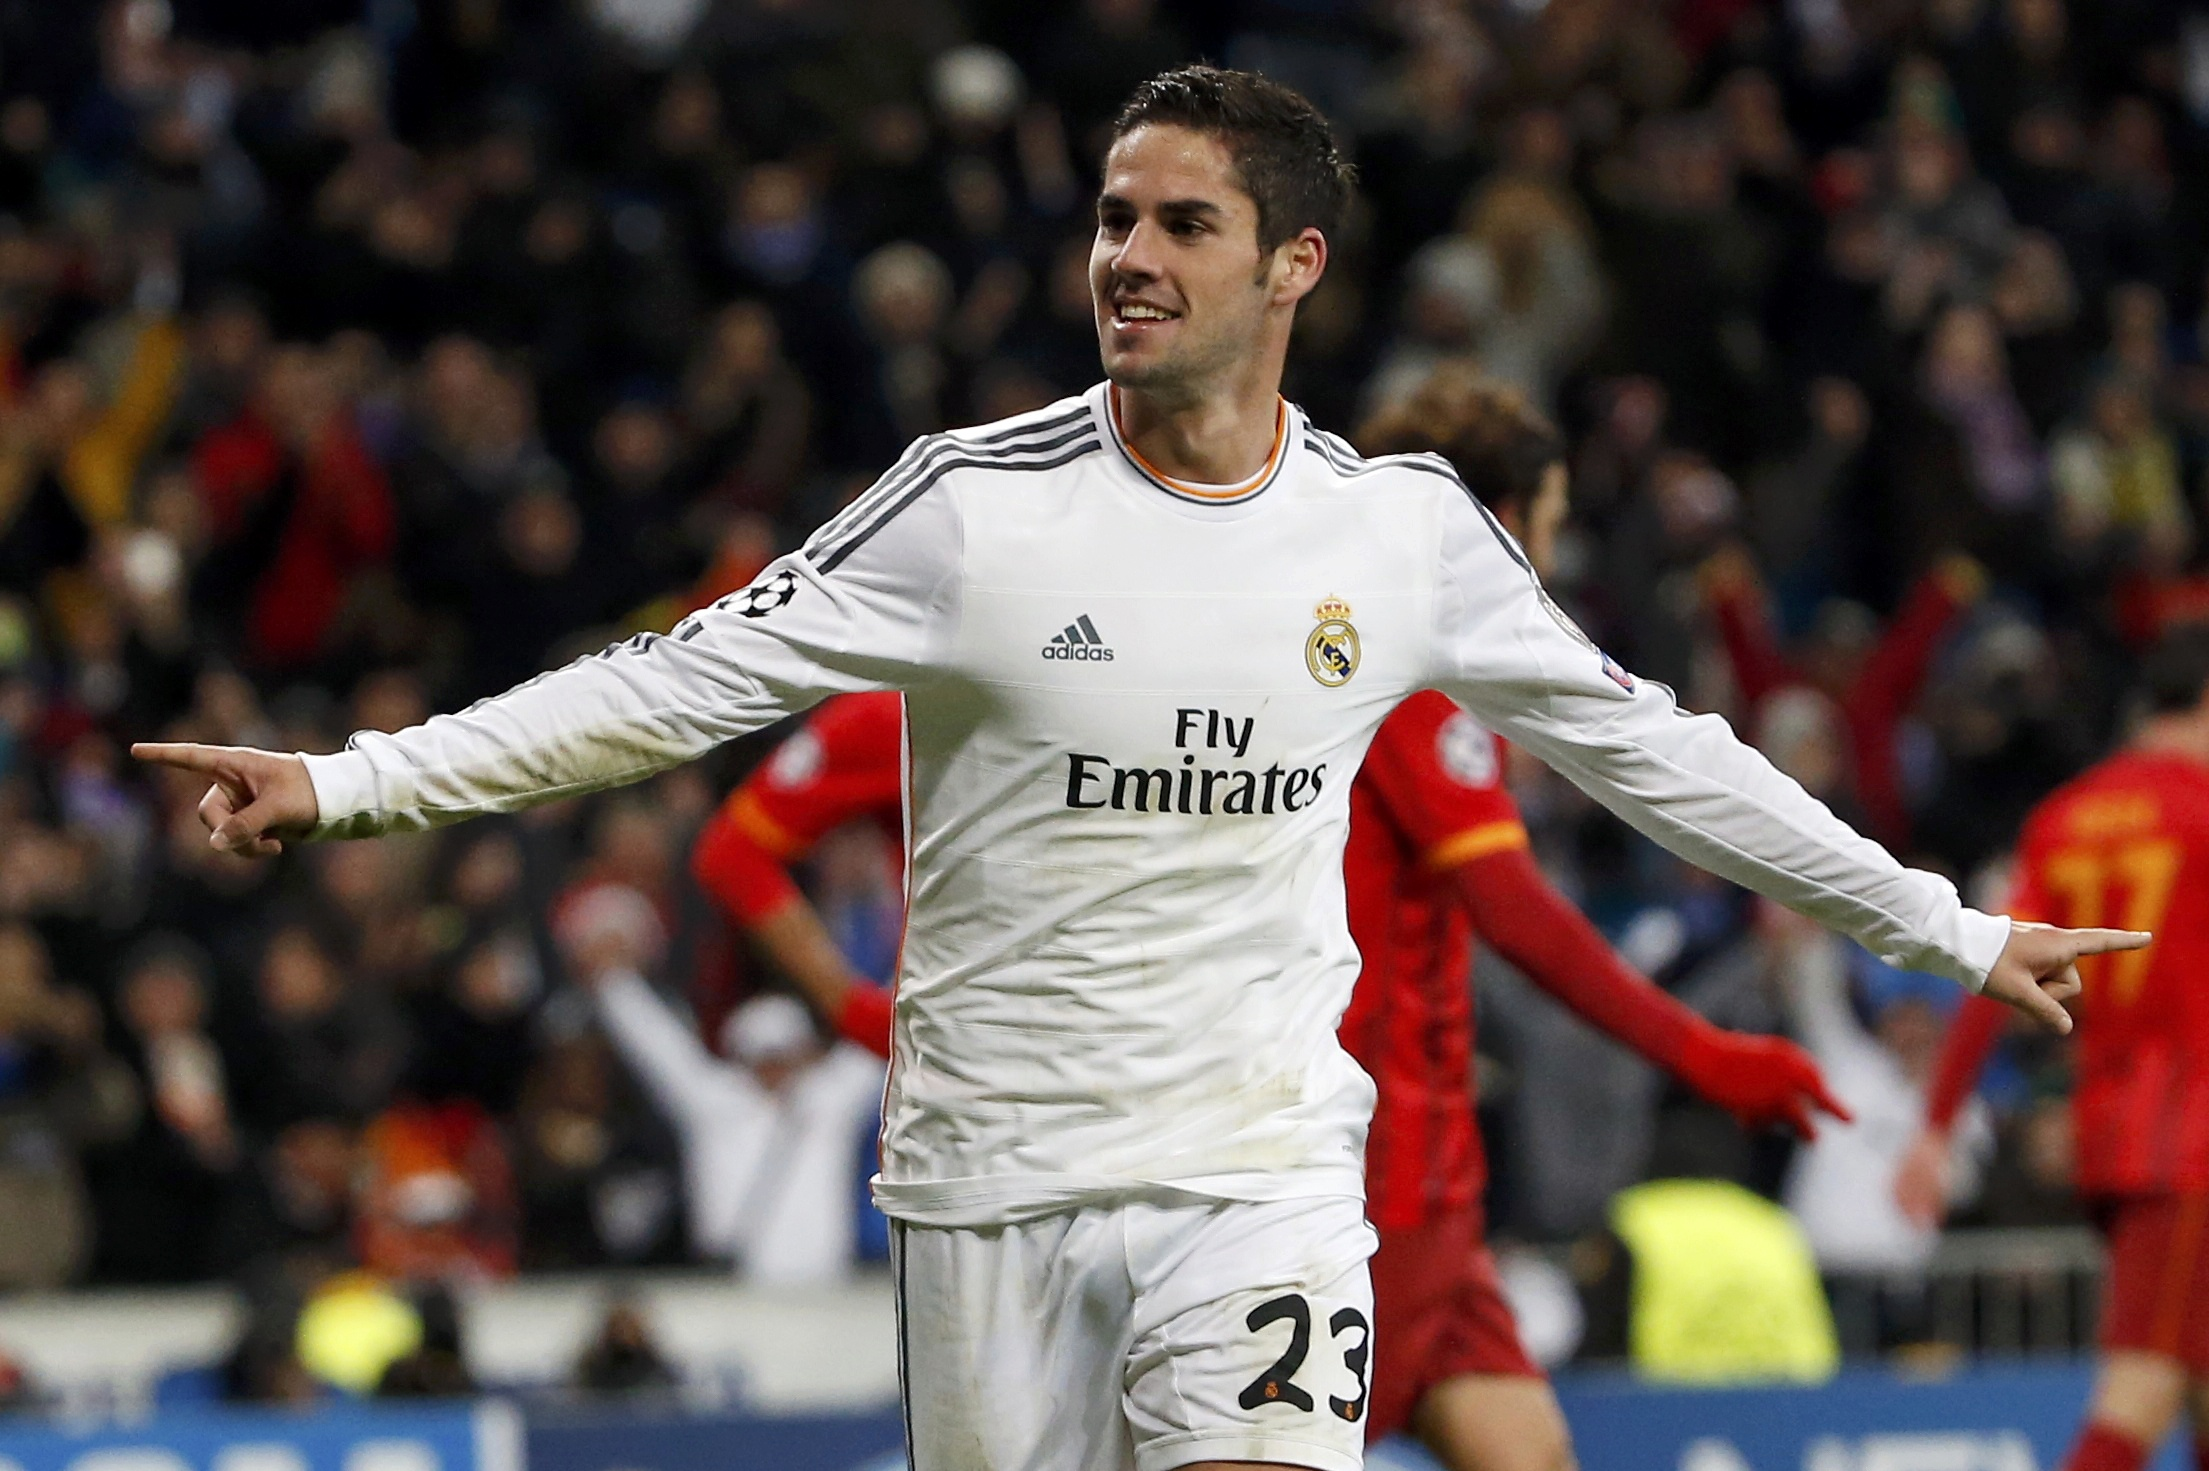 Isco celebrates after scoring a goal against Galatasaray during their Champions League soccer match in November. Picture: Action Images